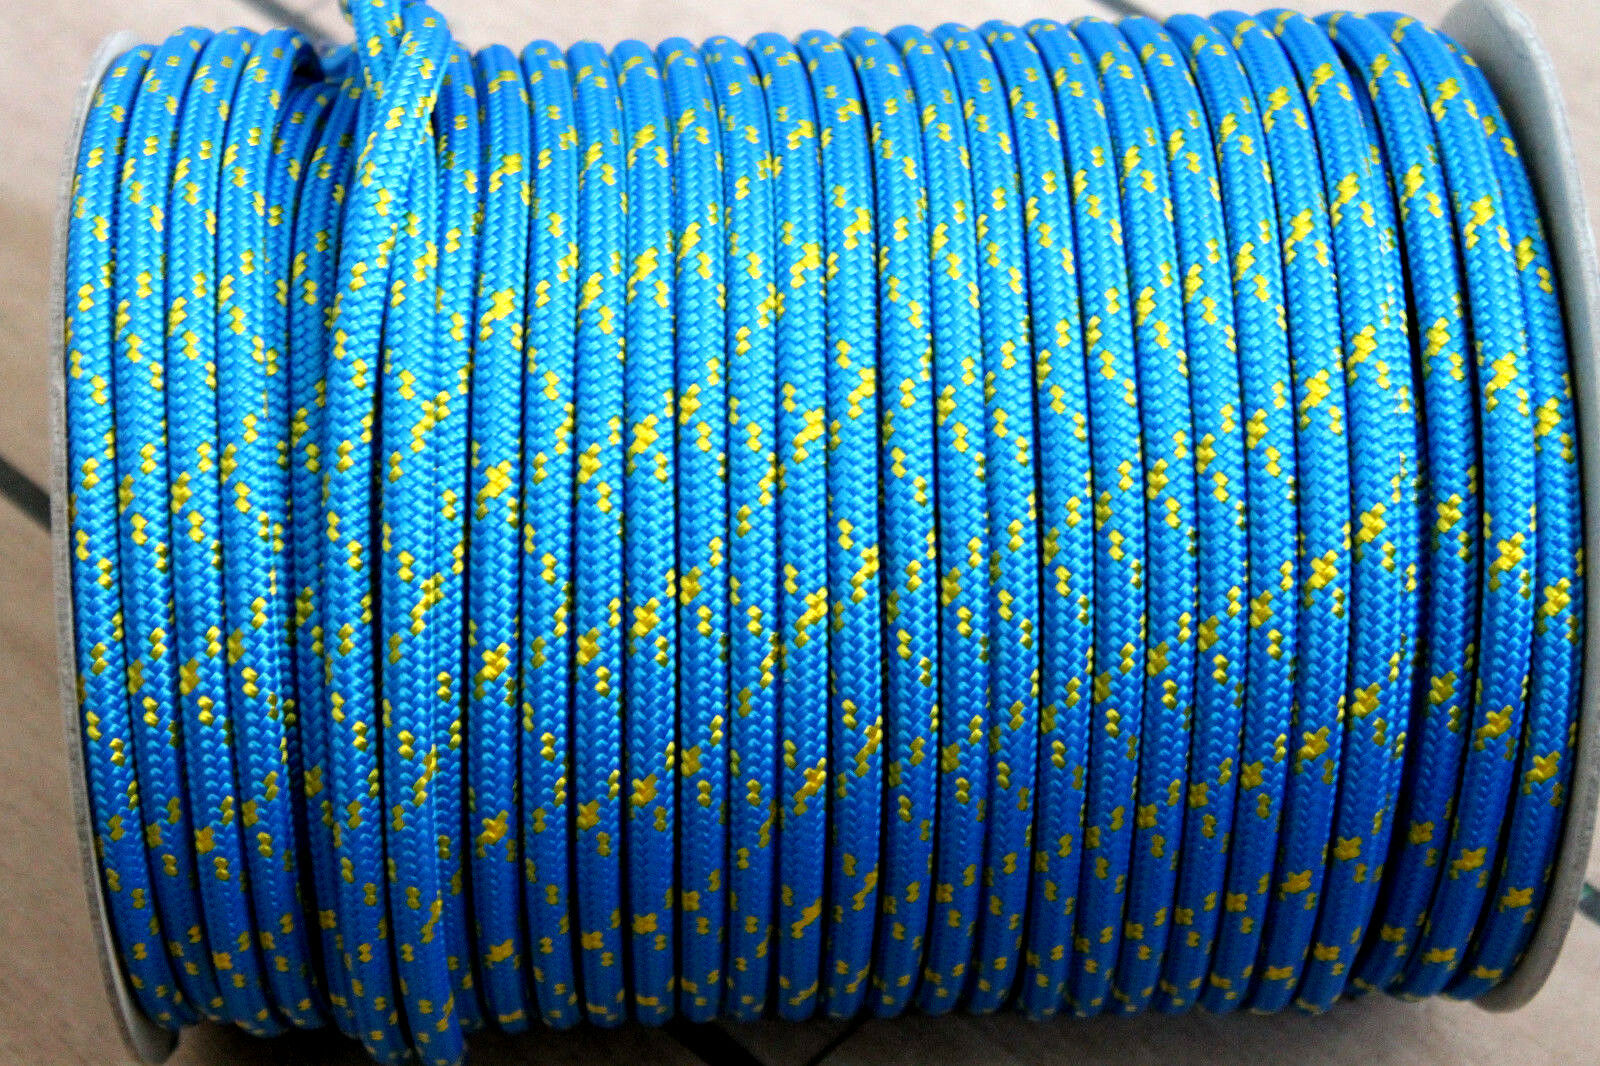 20 MT. CIMA SCOTTA DRIZZA SK75 DYNEEMA ø 8 mm. DOPPIA TRECCIA MADE IN ITALY VELA